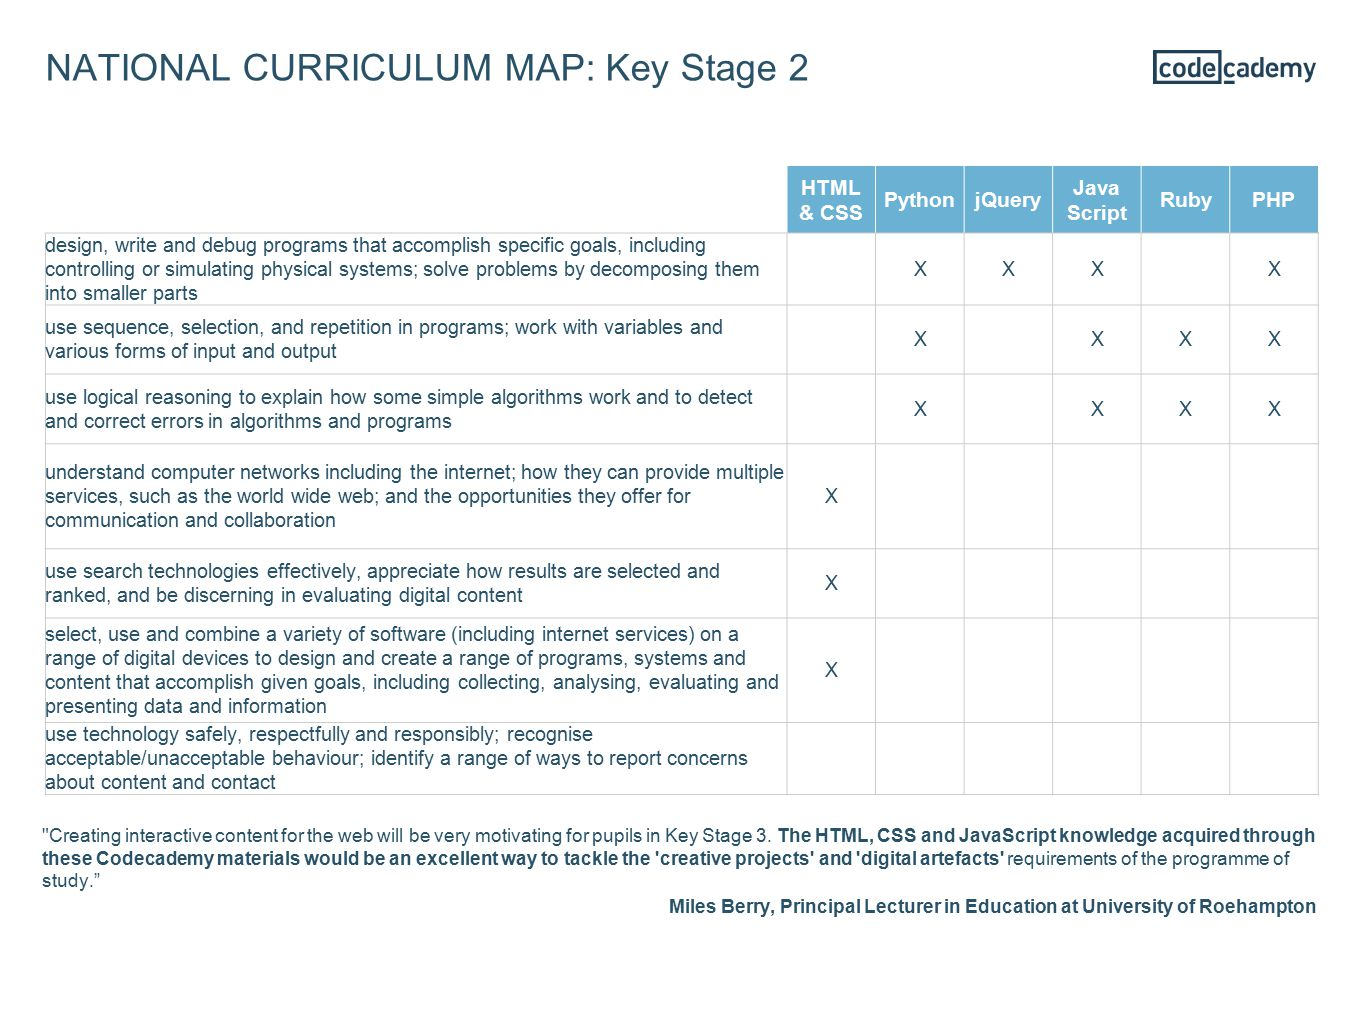 NATIONAL CURRICULUM MAP: Key Stage 2